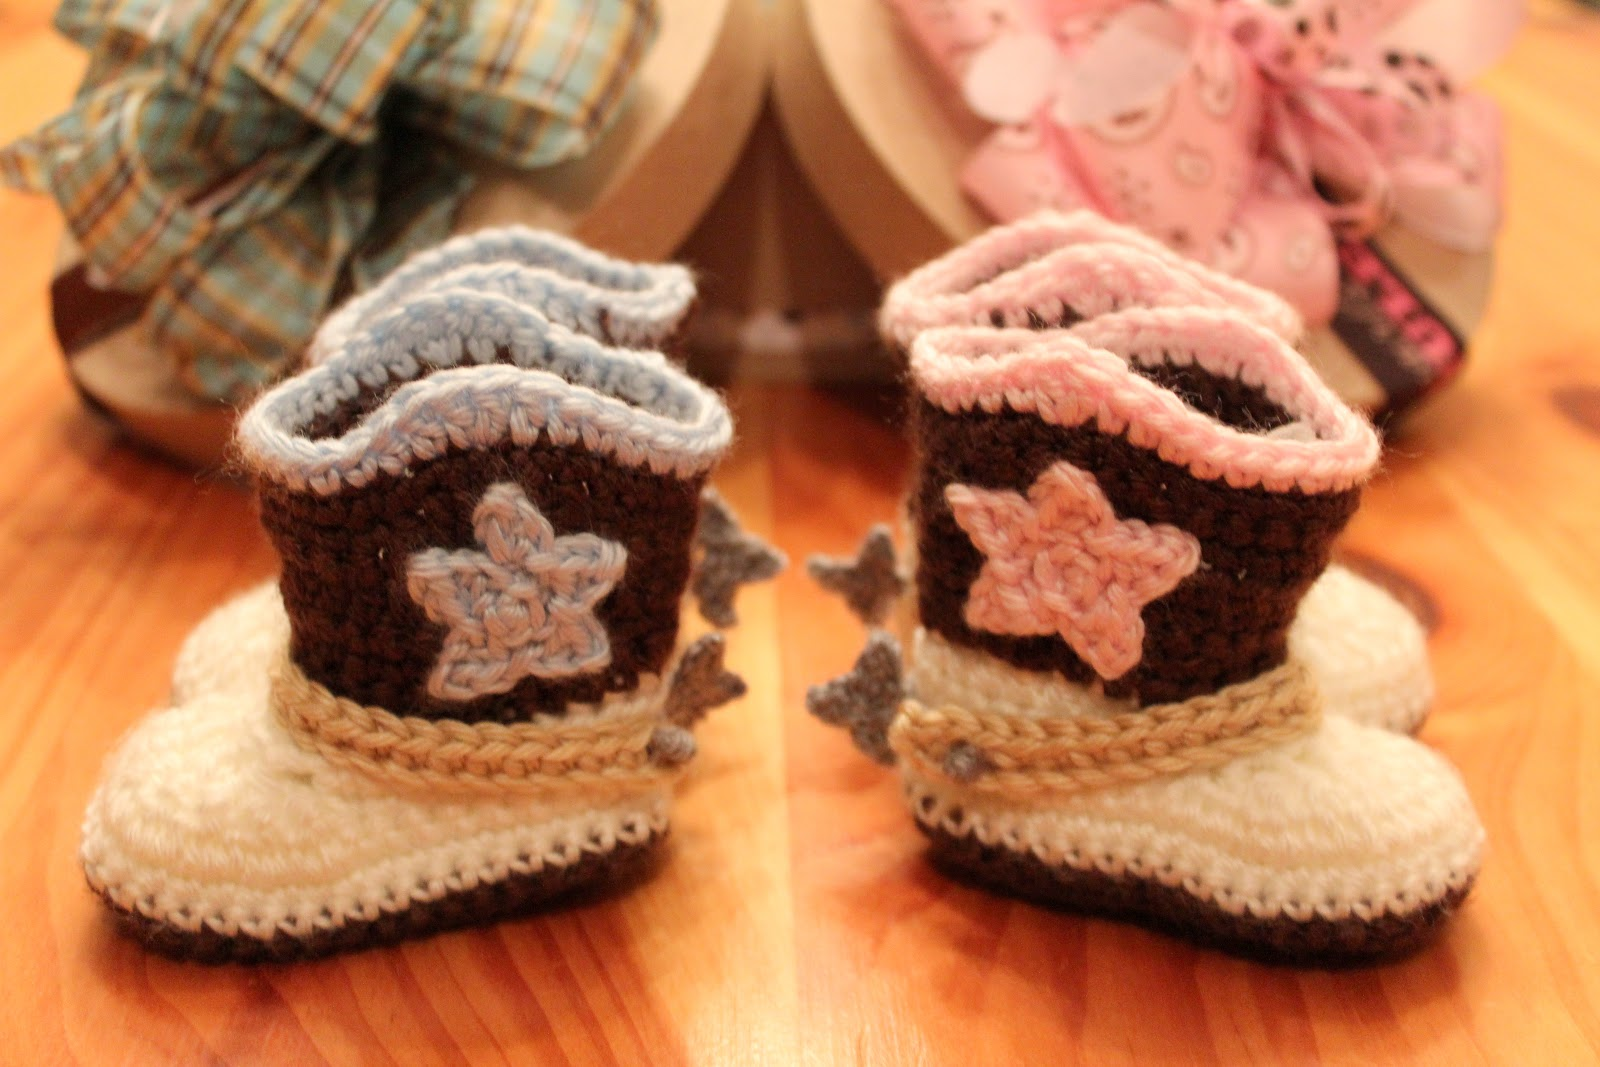 Crocheted Cowboy Boots & Breakfast Basket